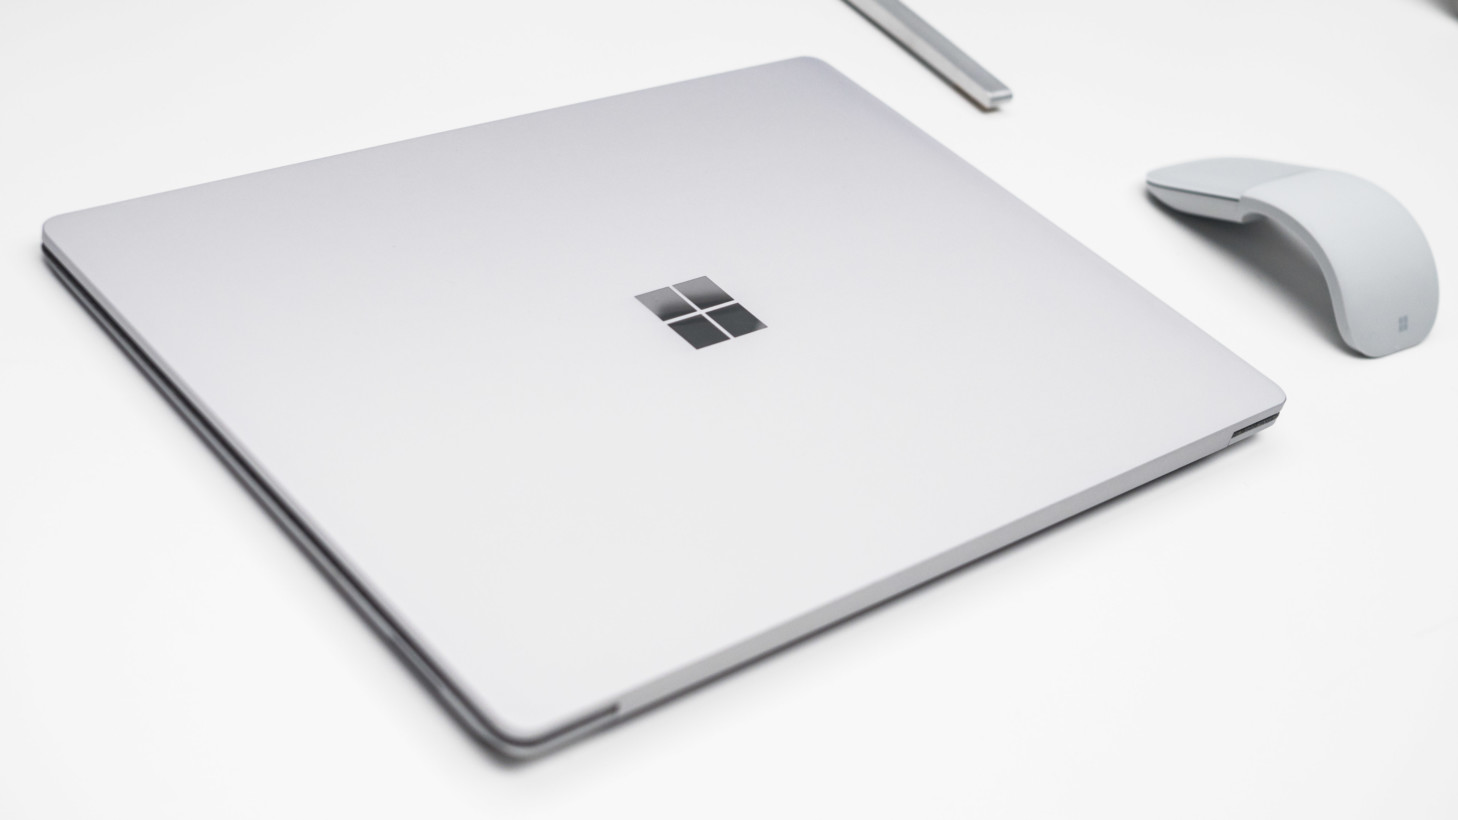 Surface Laptop - Microsoft Surface, il notebook dal design curato che sfida i MacBook Air